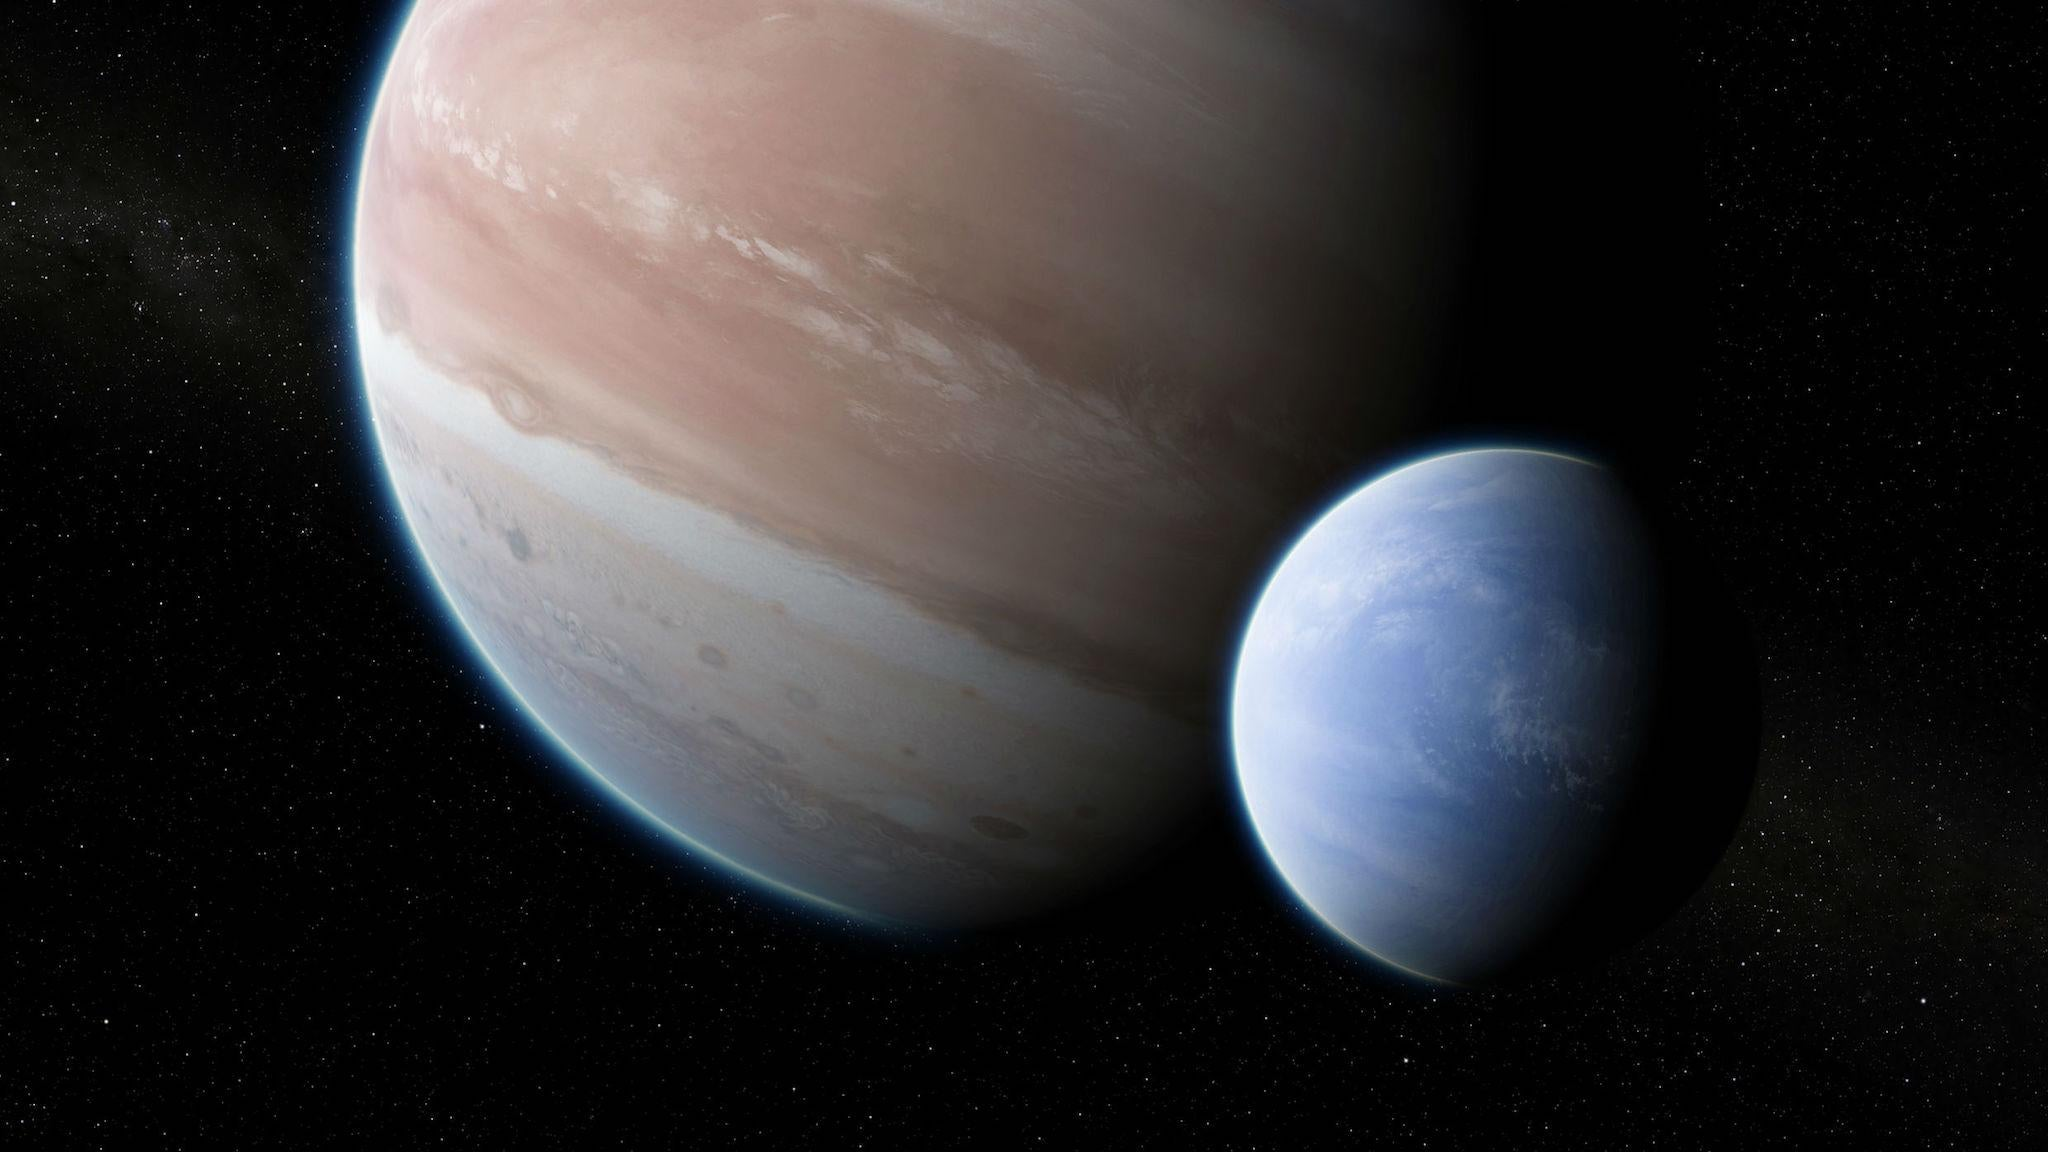 Astronomers spot the first ever 'exomoon' orbiting a distant world